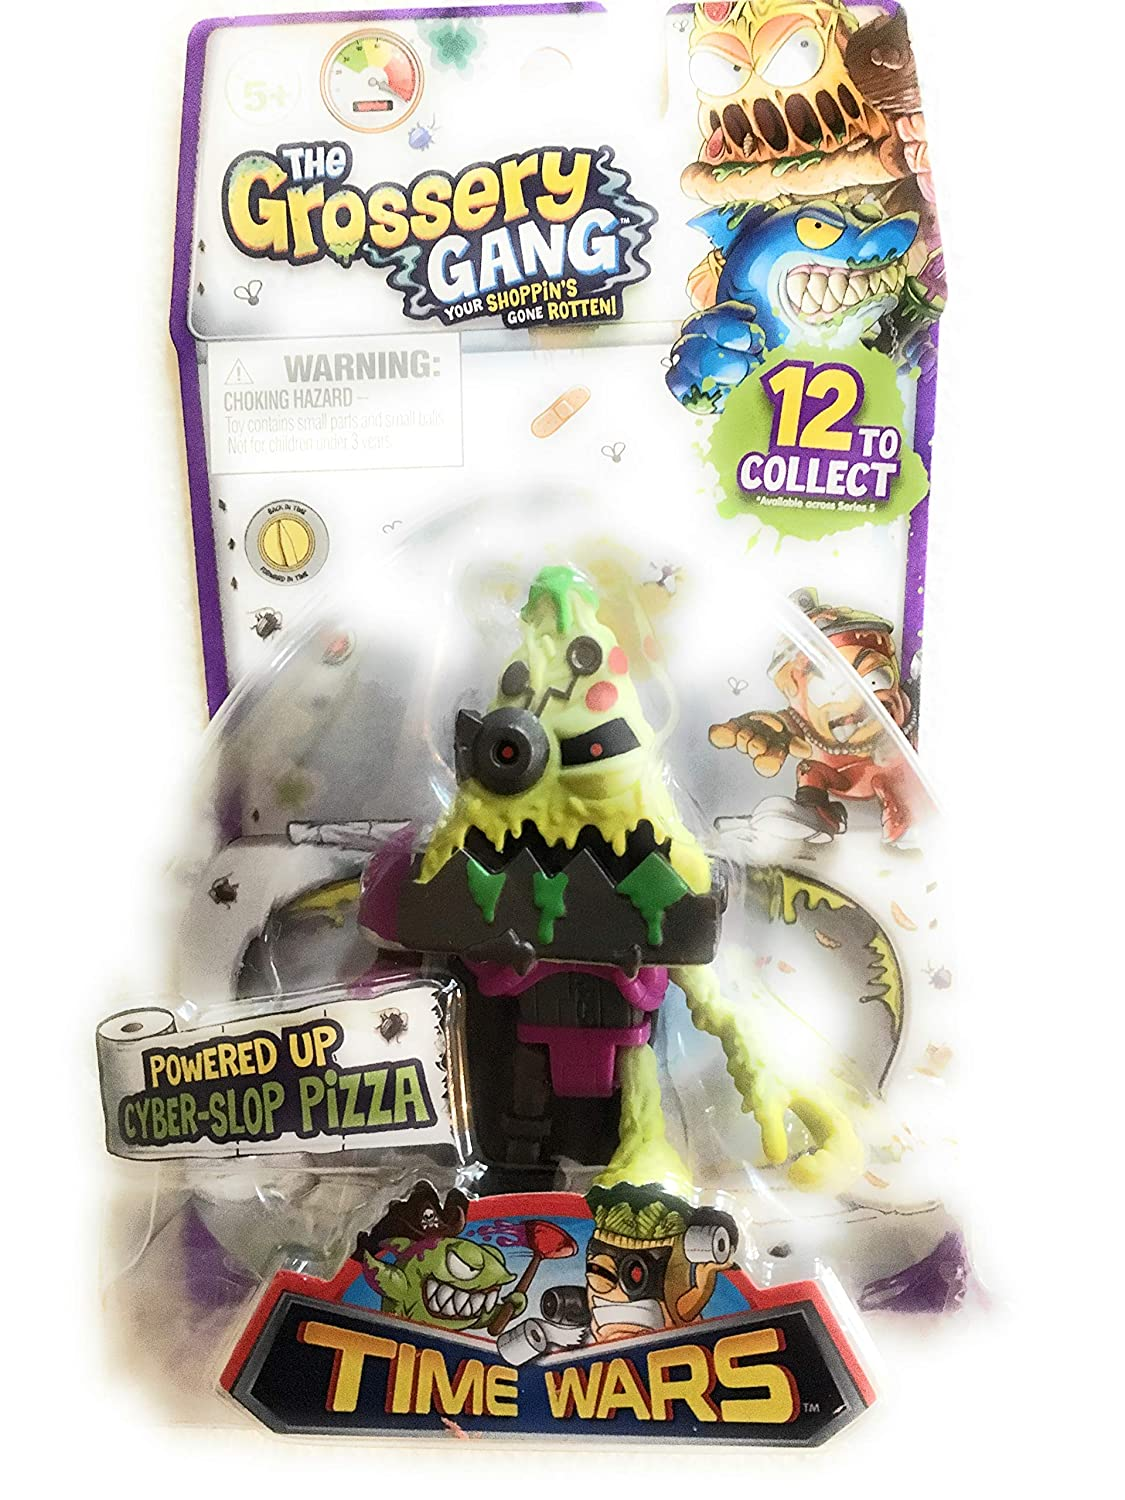 Cyper-Slop Pizza Time Wars The Grossery Gang